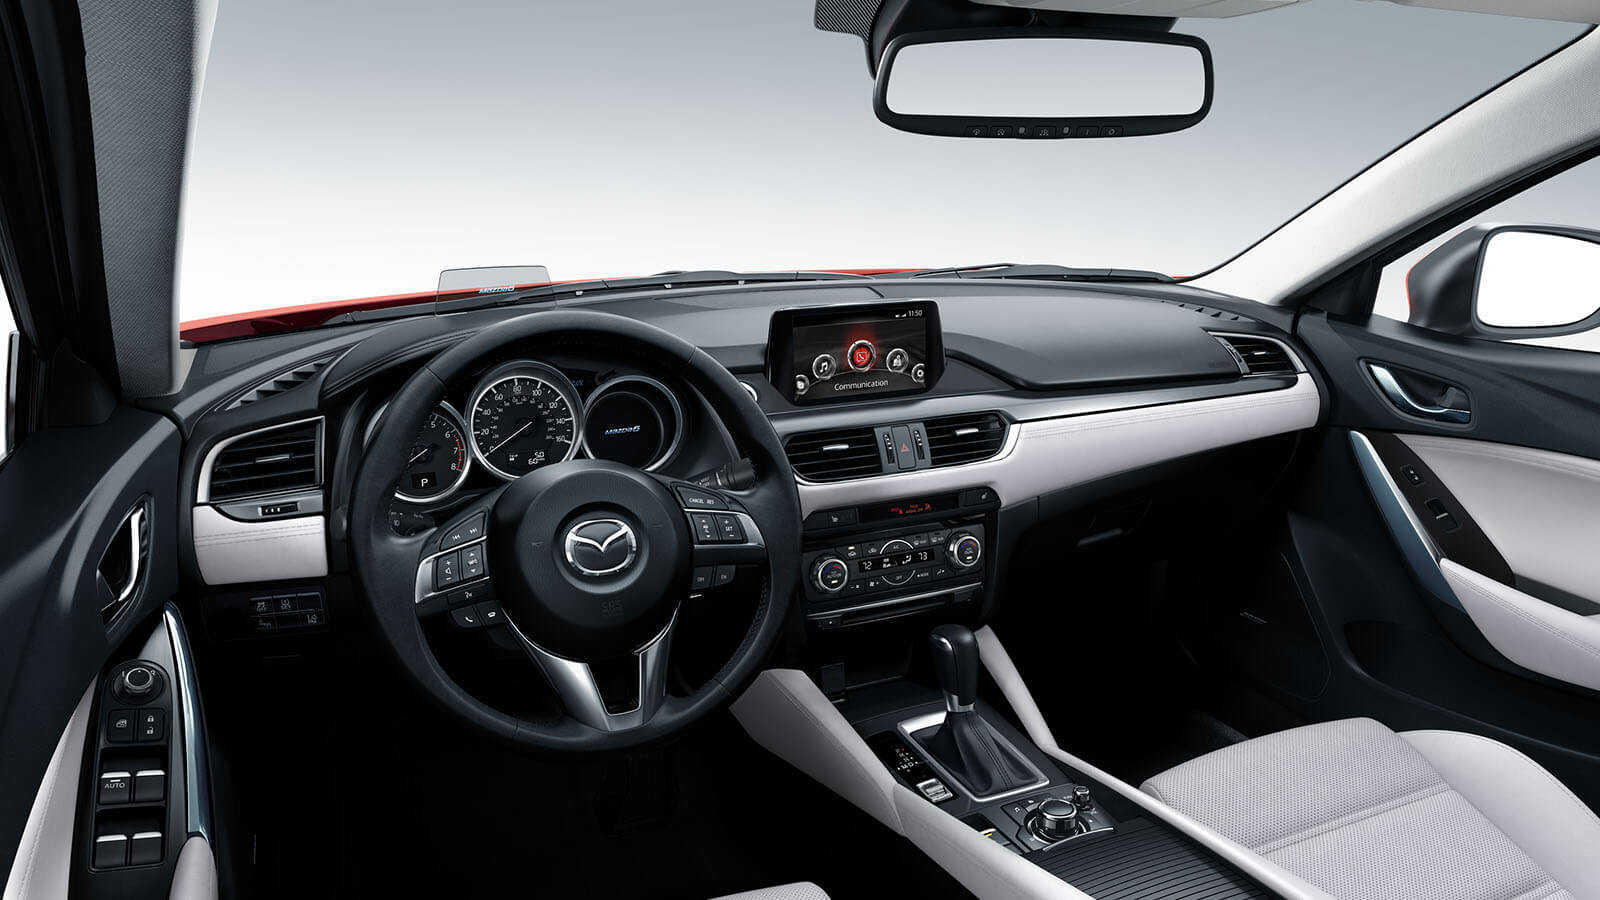 2016 Mazda6 Interior Dashboard